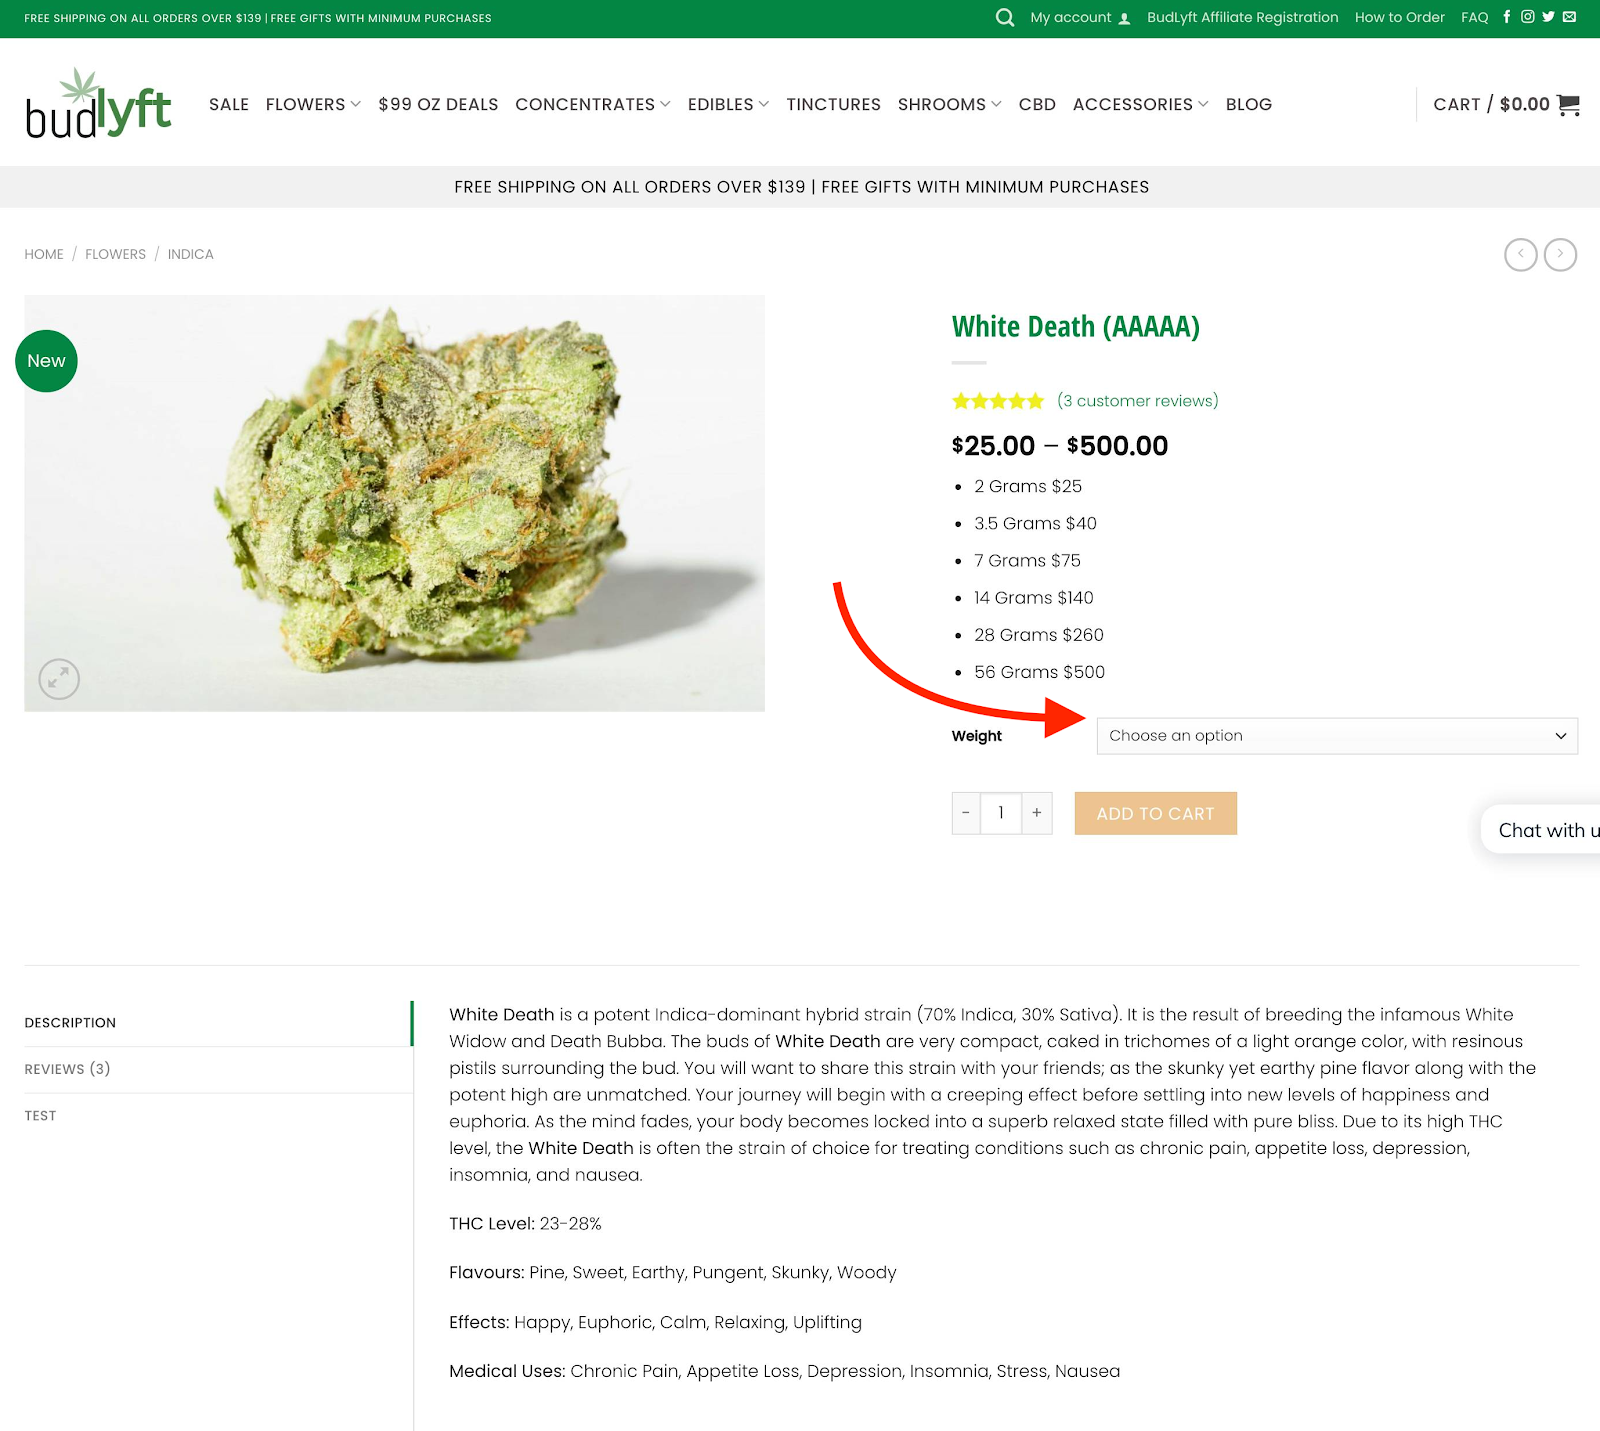 Buy Weed Online - Product Option Selection